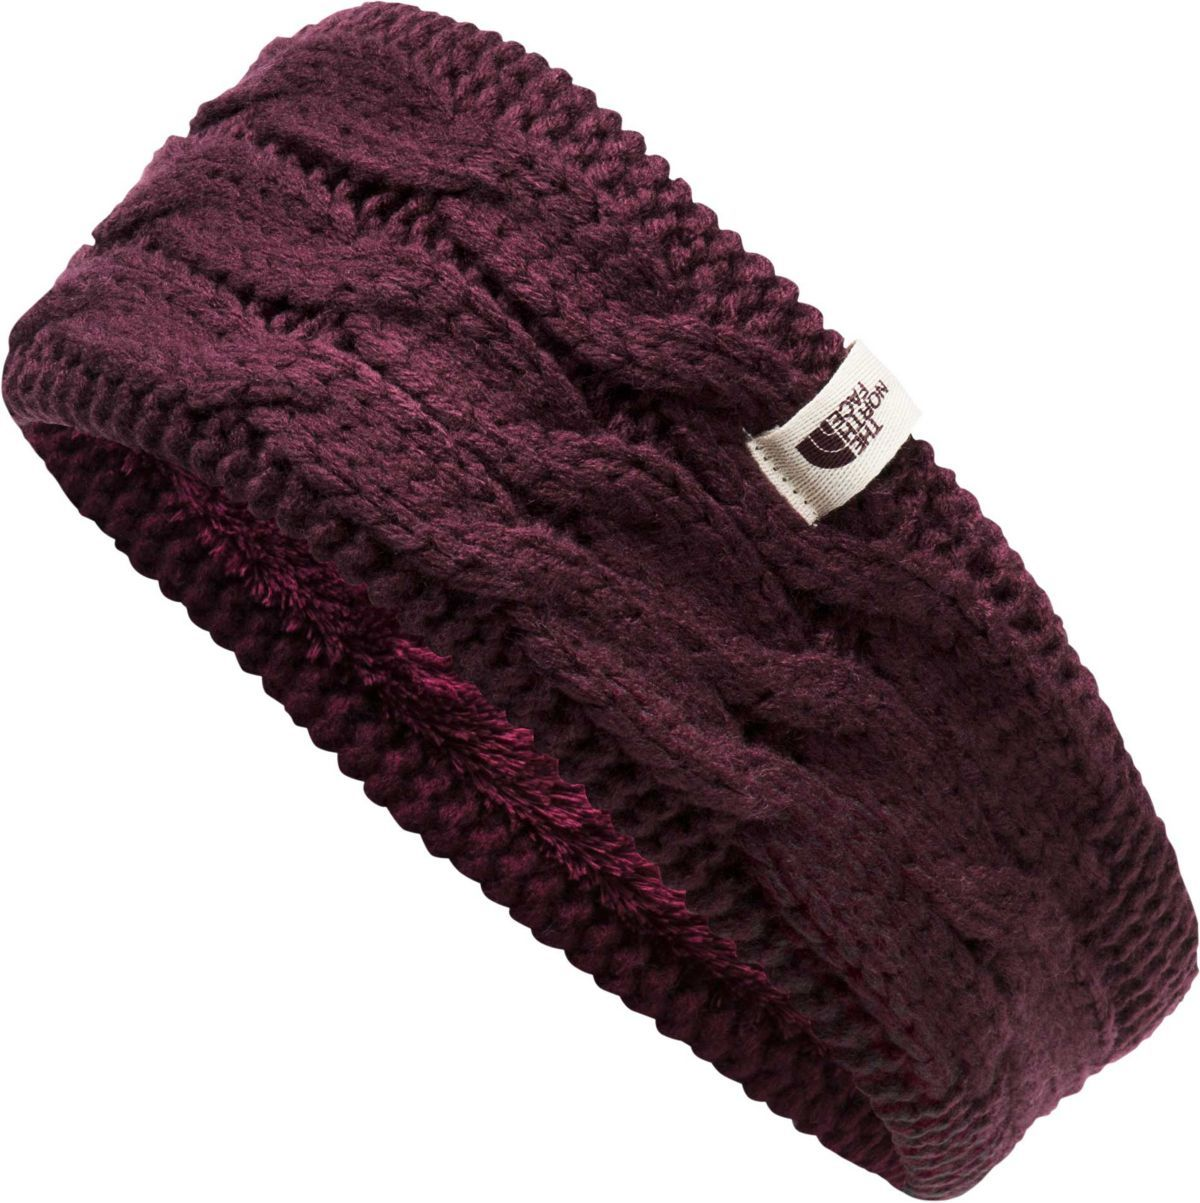 The North Face Women's Fuzzy Cable Ear Band